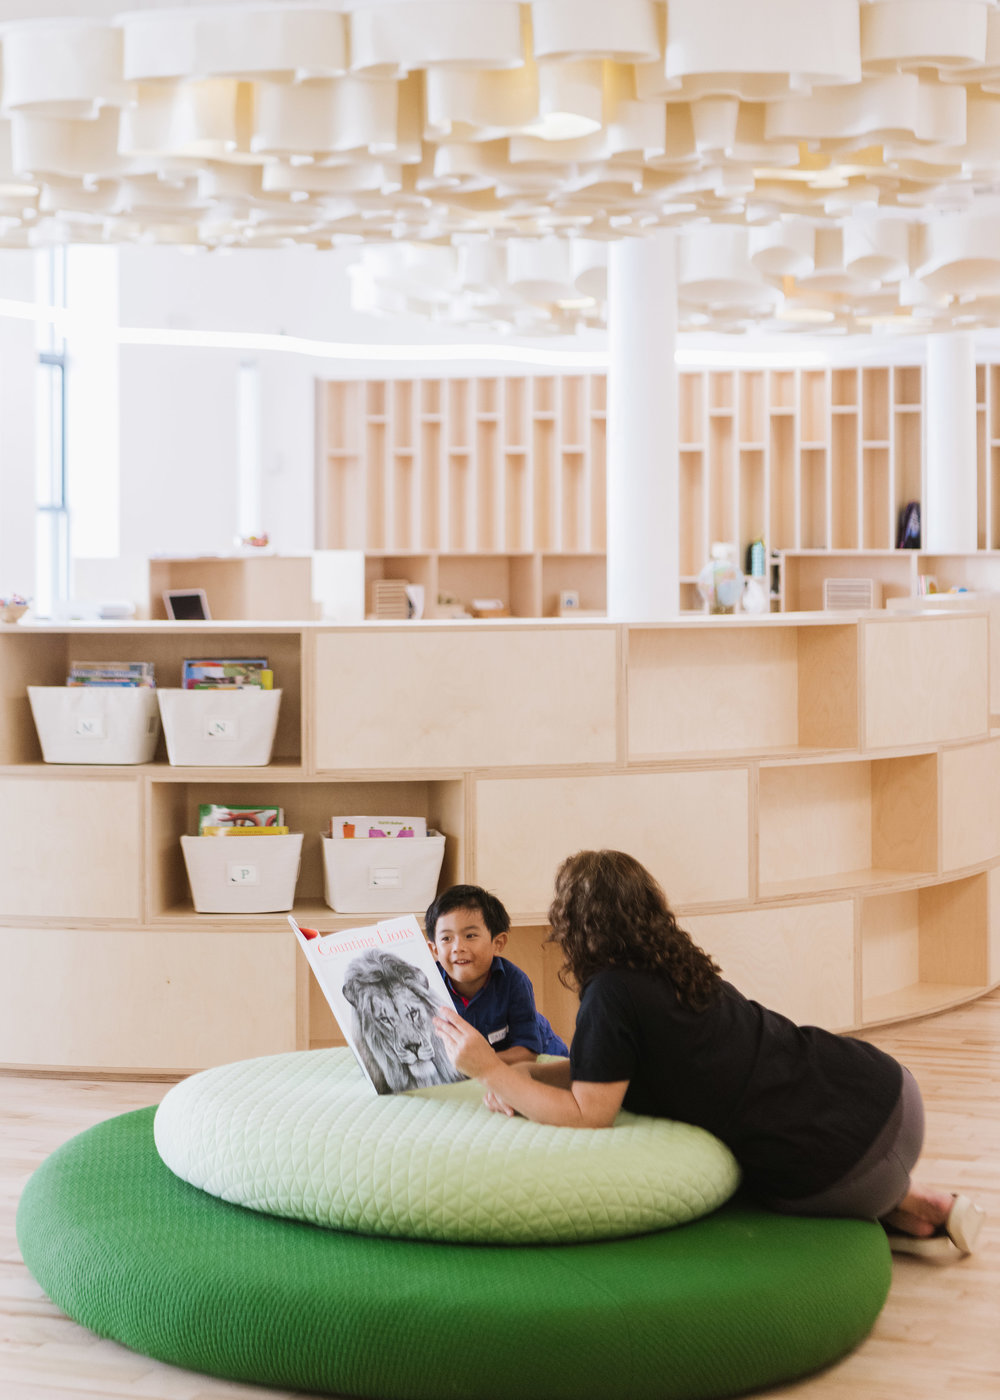 wegrow-big-wework-kindergarten-children-new-york-usa_dezeen_2364_col_1.jpg